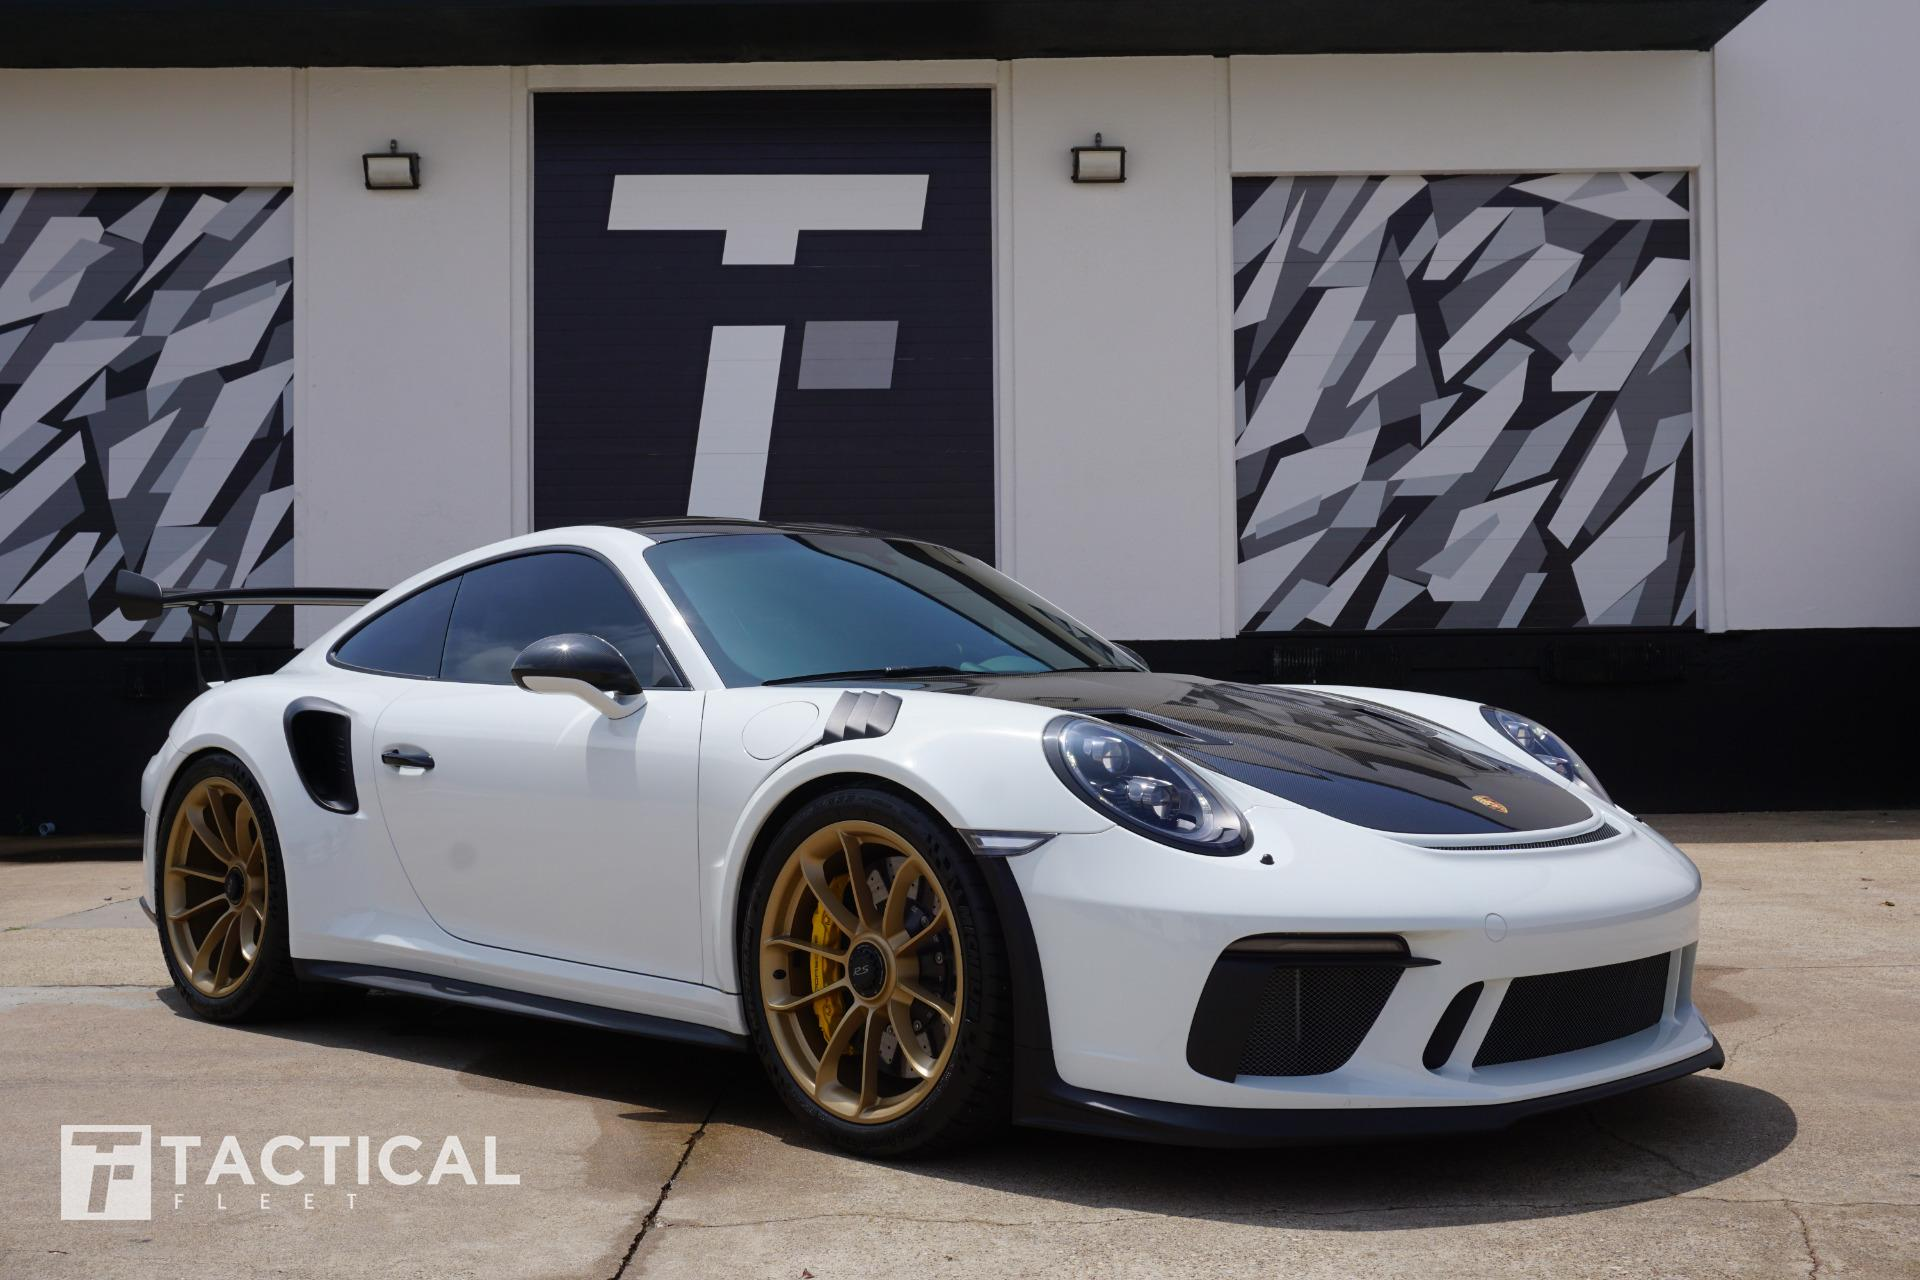 Used 2019 Porsche 911 Gt3 Rs For Sale 235 900 Tactical Fleet Stock Tf1490